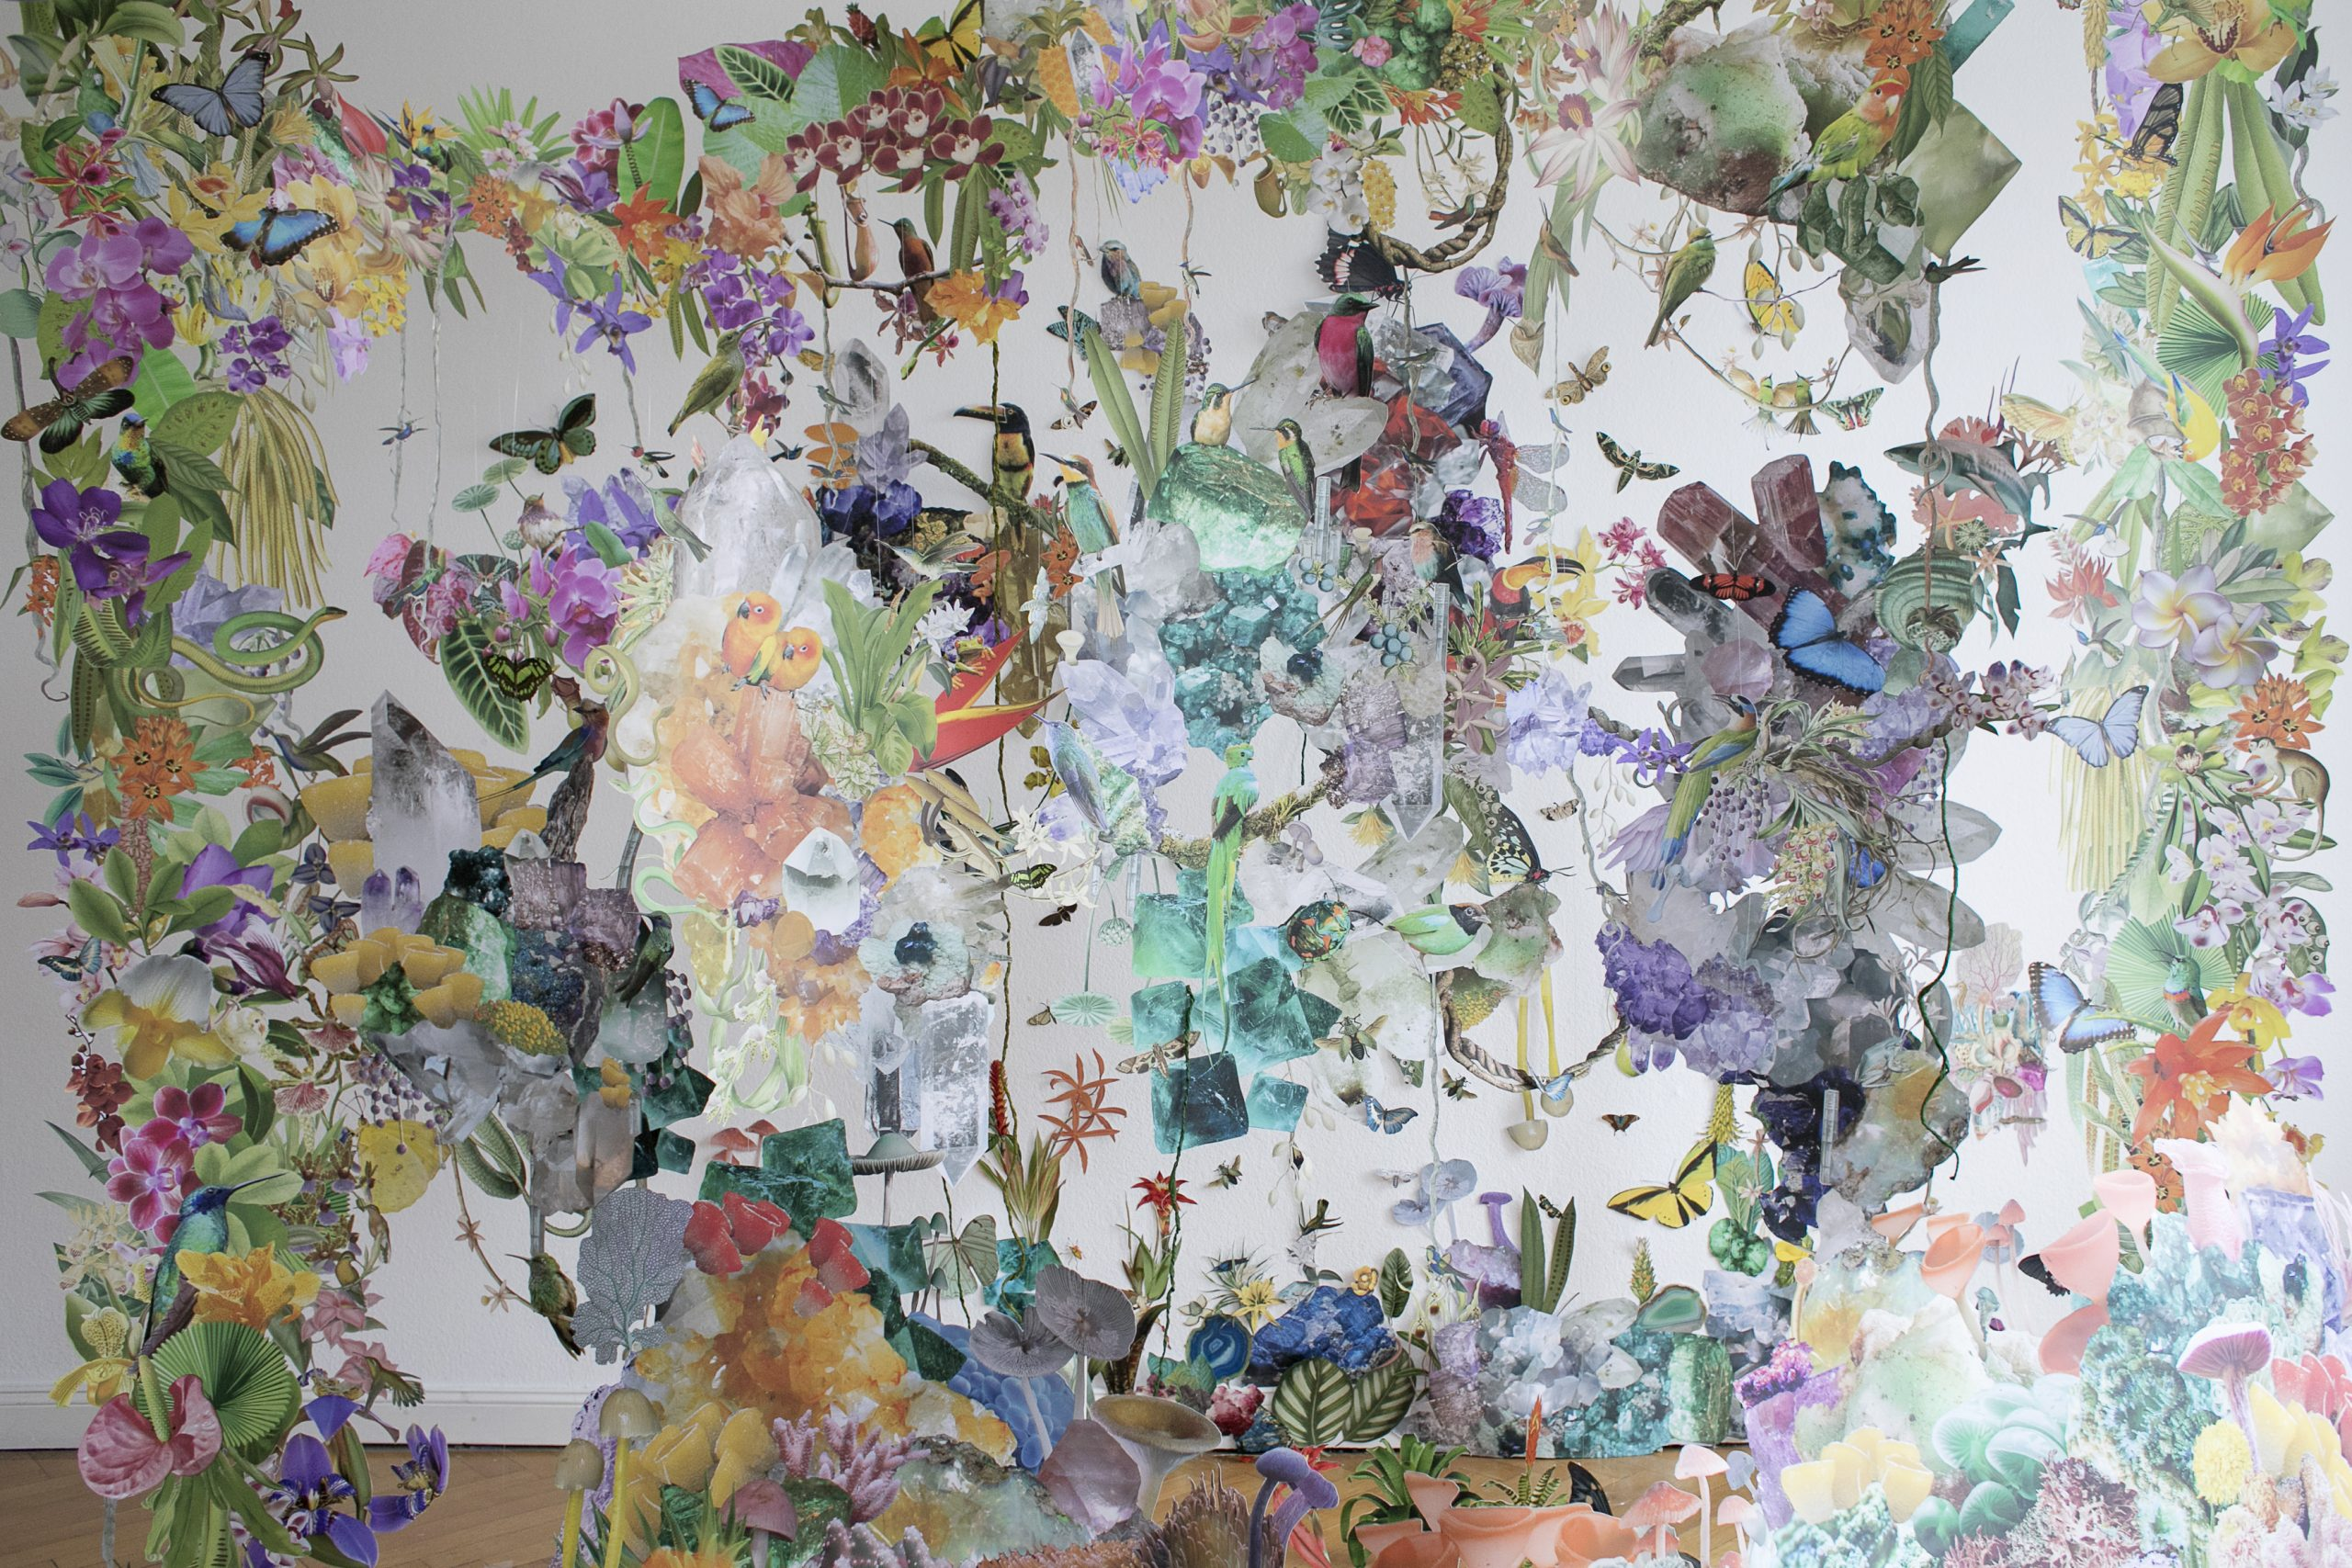 Collage installation art with various biodiversity figures.